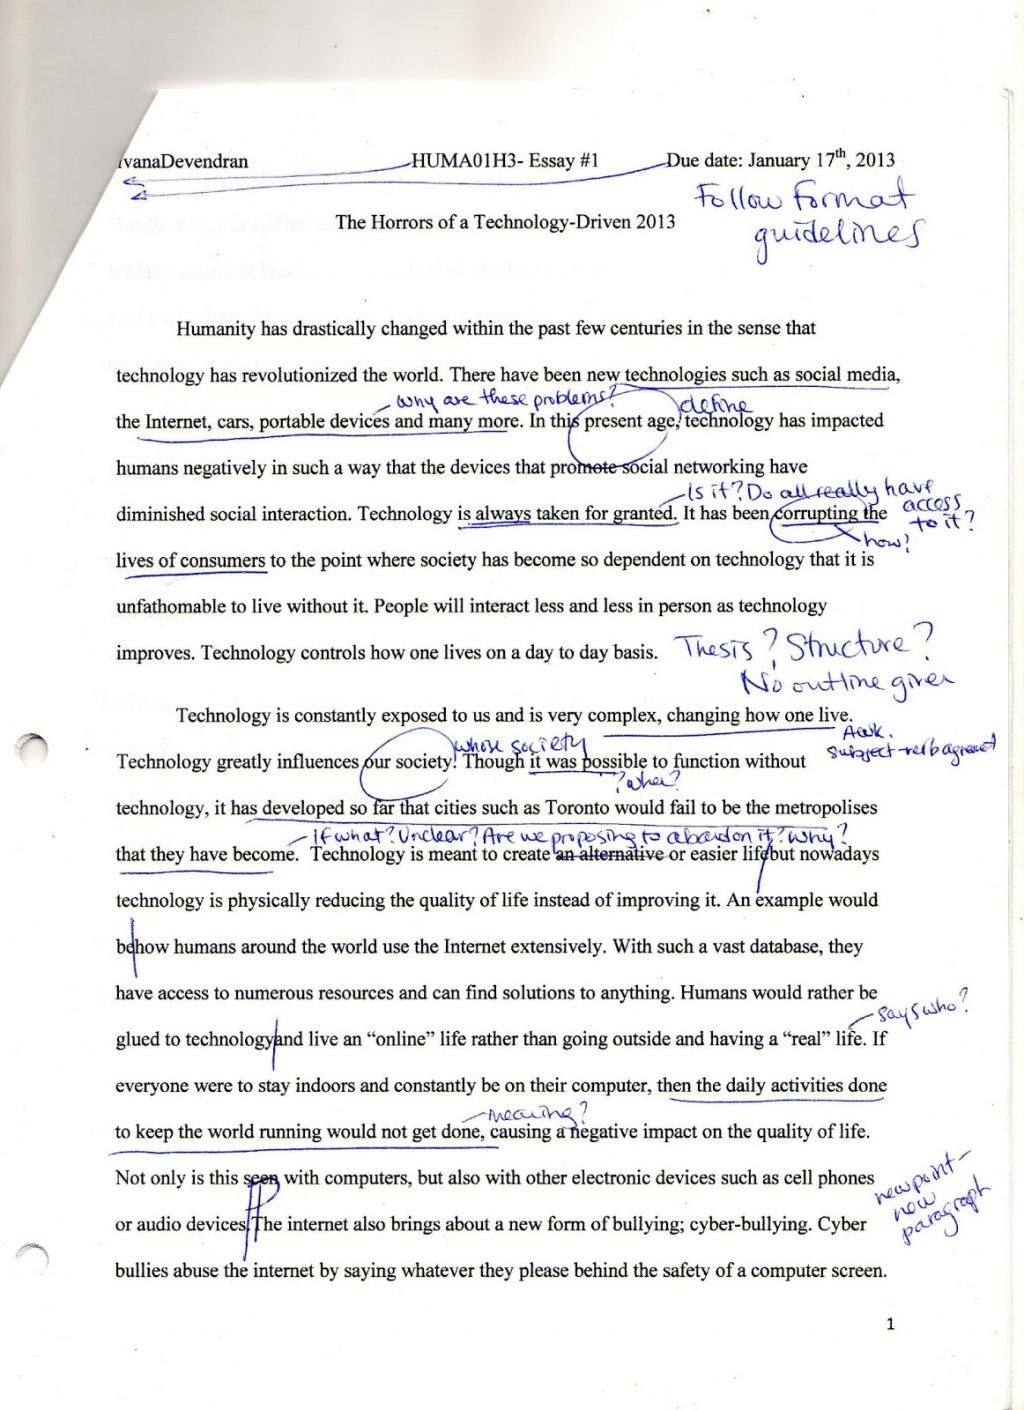 005 Music Research Paper Topics Argumentative Essay Img008 What Should You Avoid In Writing Humanities Appreciation Questions Classical History Persuasive20 Incredible Large